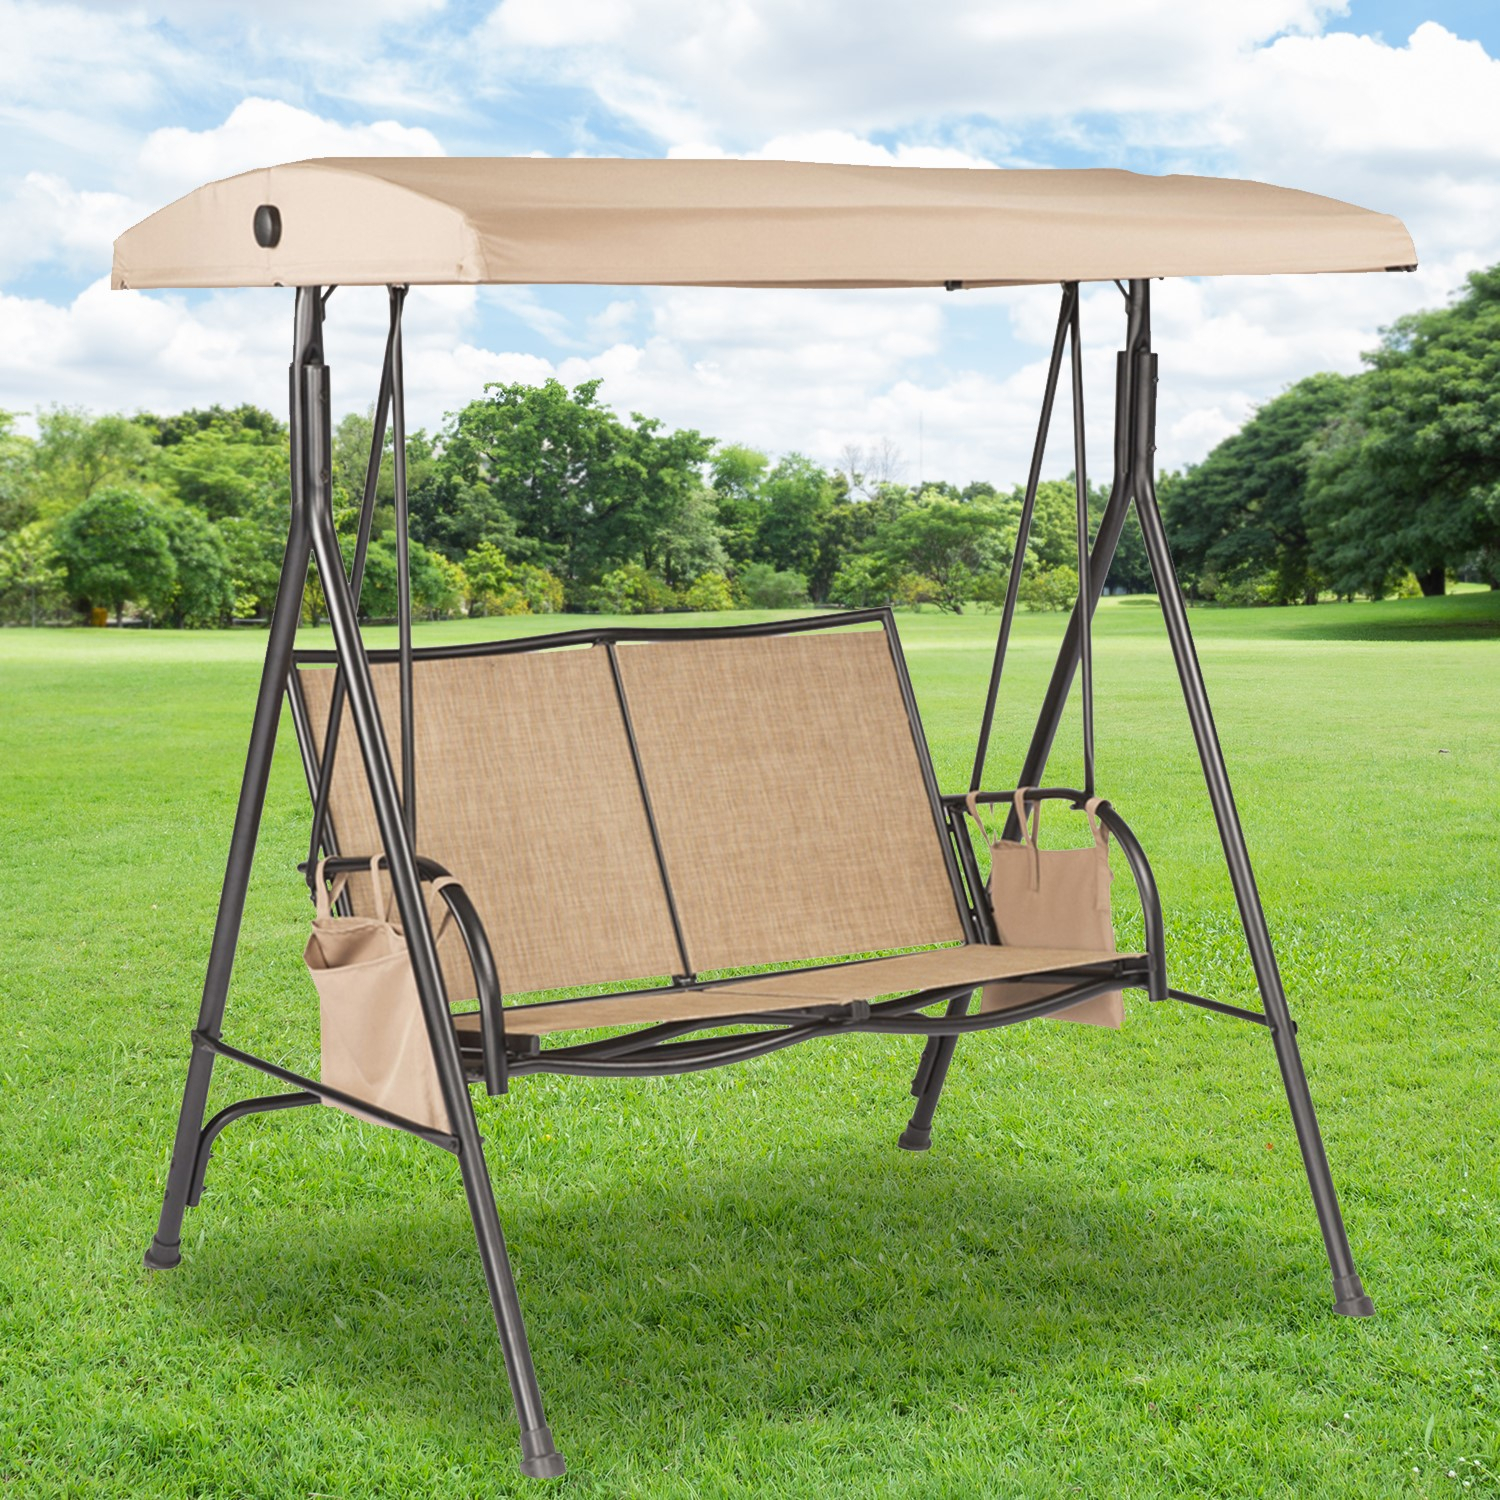 Replacement Swing Canopies For Lowe's Swings – Garden Winds Throughout 2 Person Black Steel Outdoor Swings (View 6 of 25)